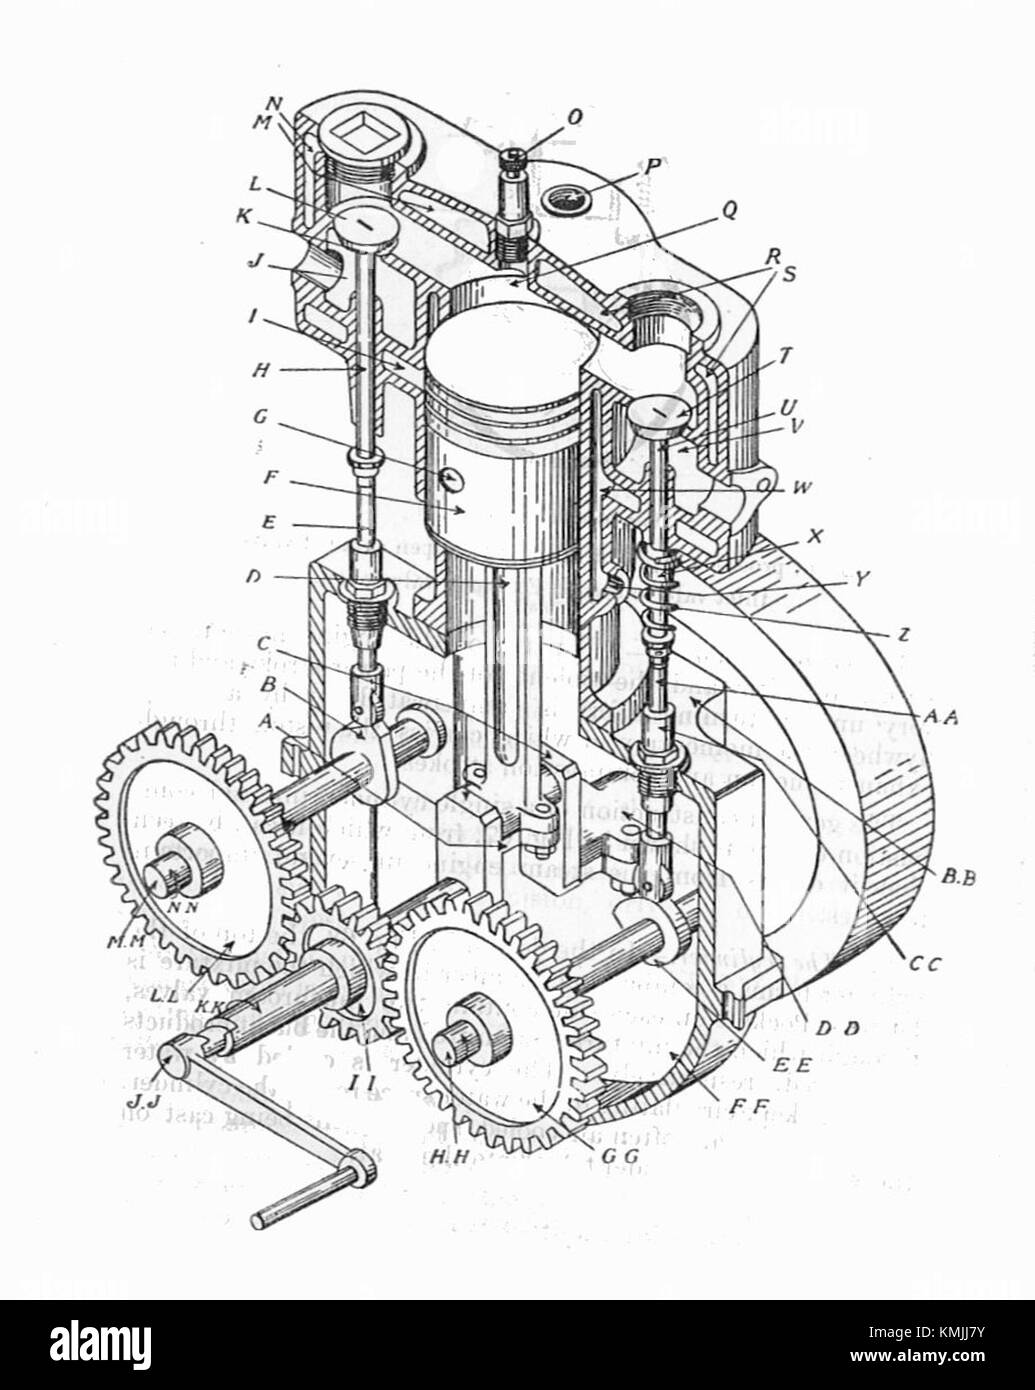 hight resolution of t head single cylinder otto engine army service corps training mechanical transport